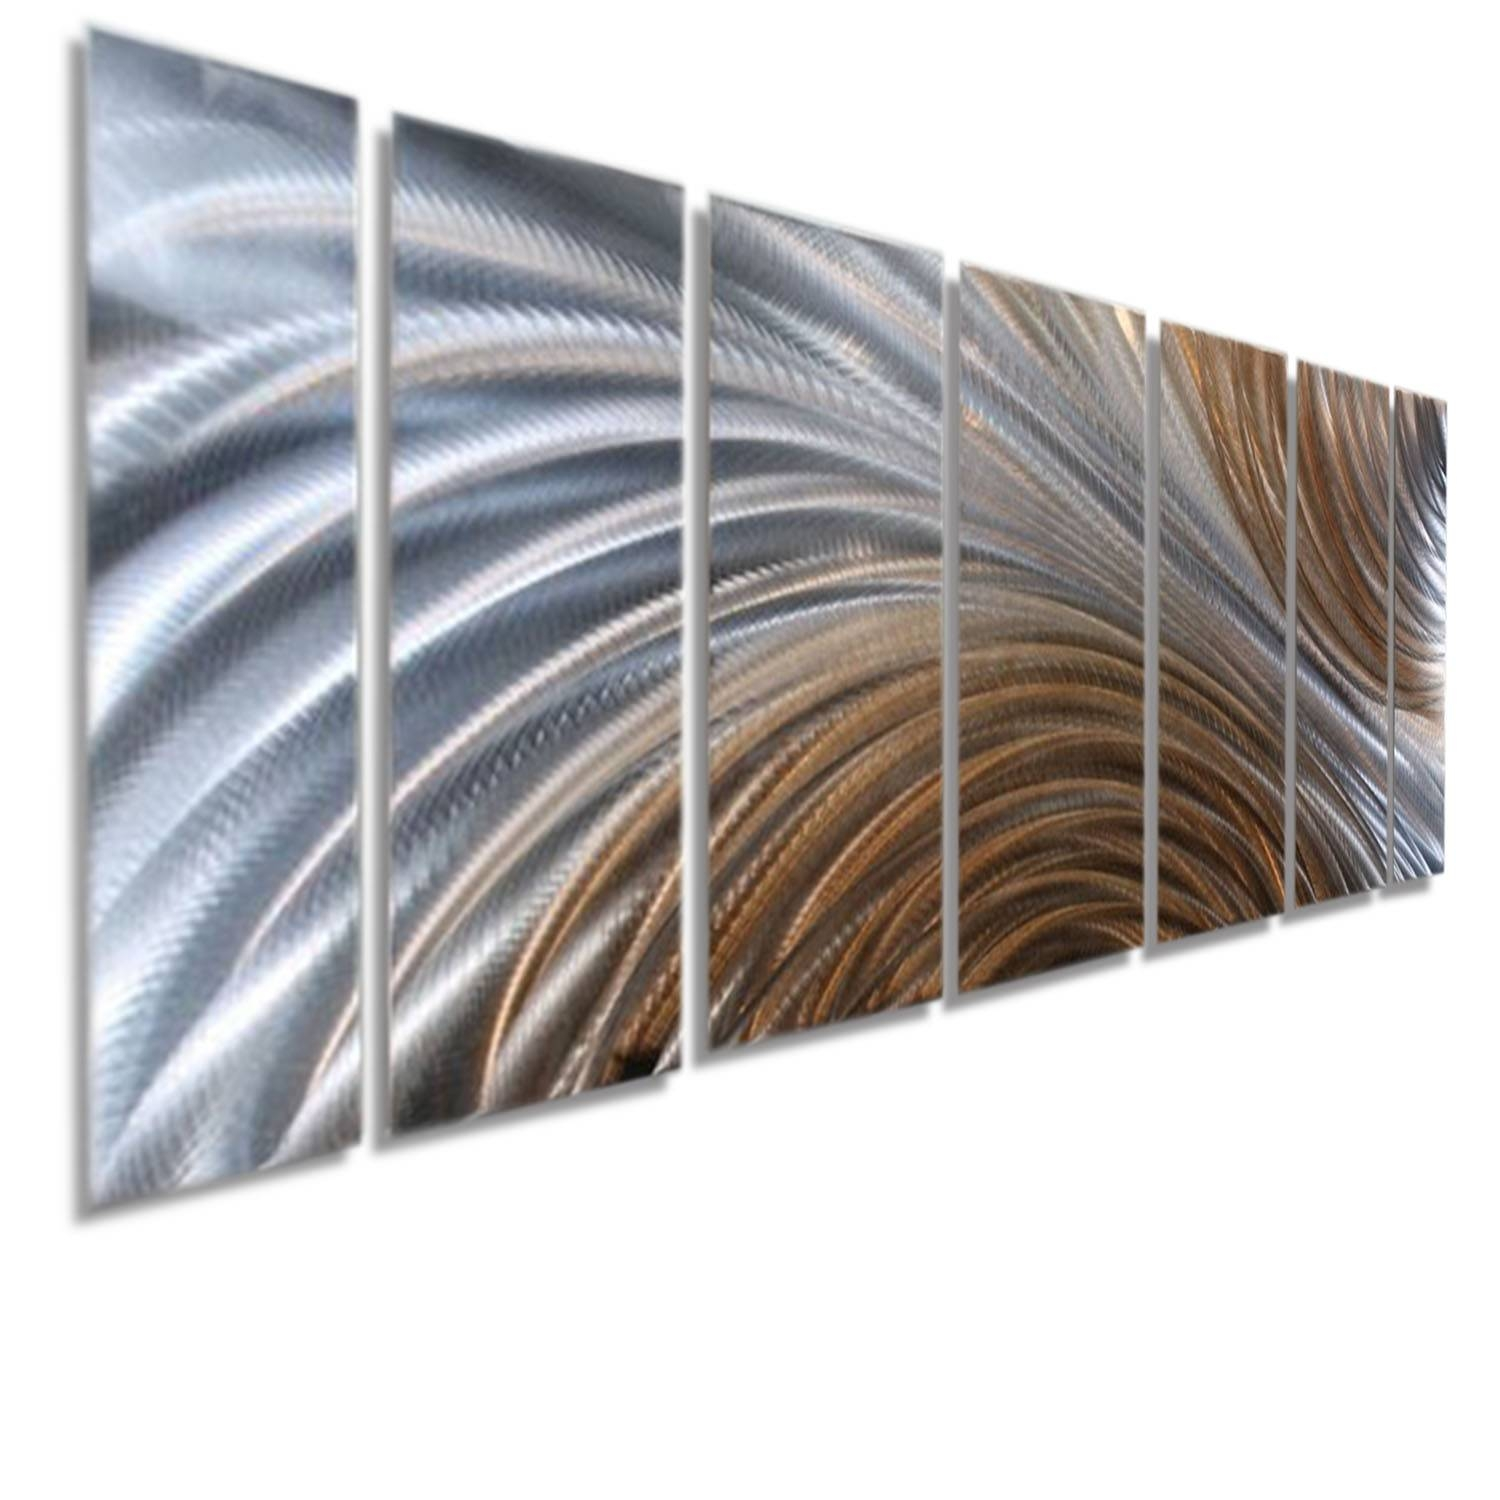 Articles With Metal Wall Art Ebay Uk Tag: Metal Art Wall Decor Throughout Latest Ash Carl Metal Wall Art (View 9 of 30)